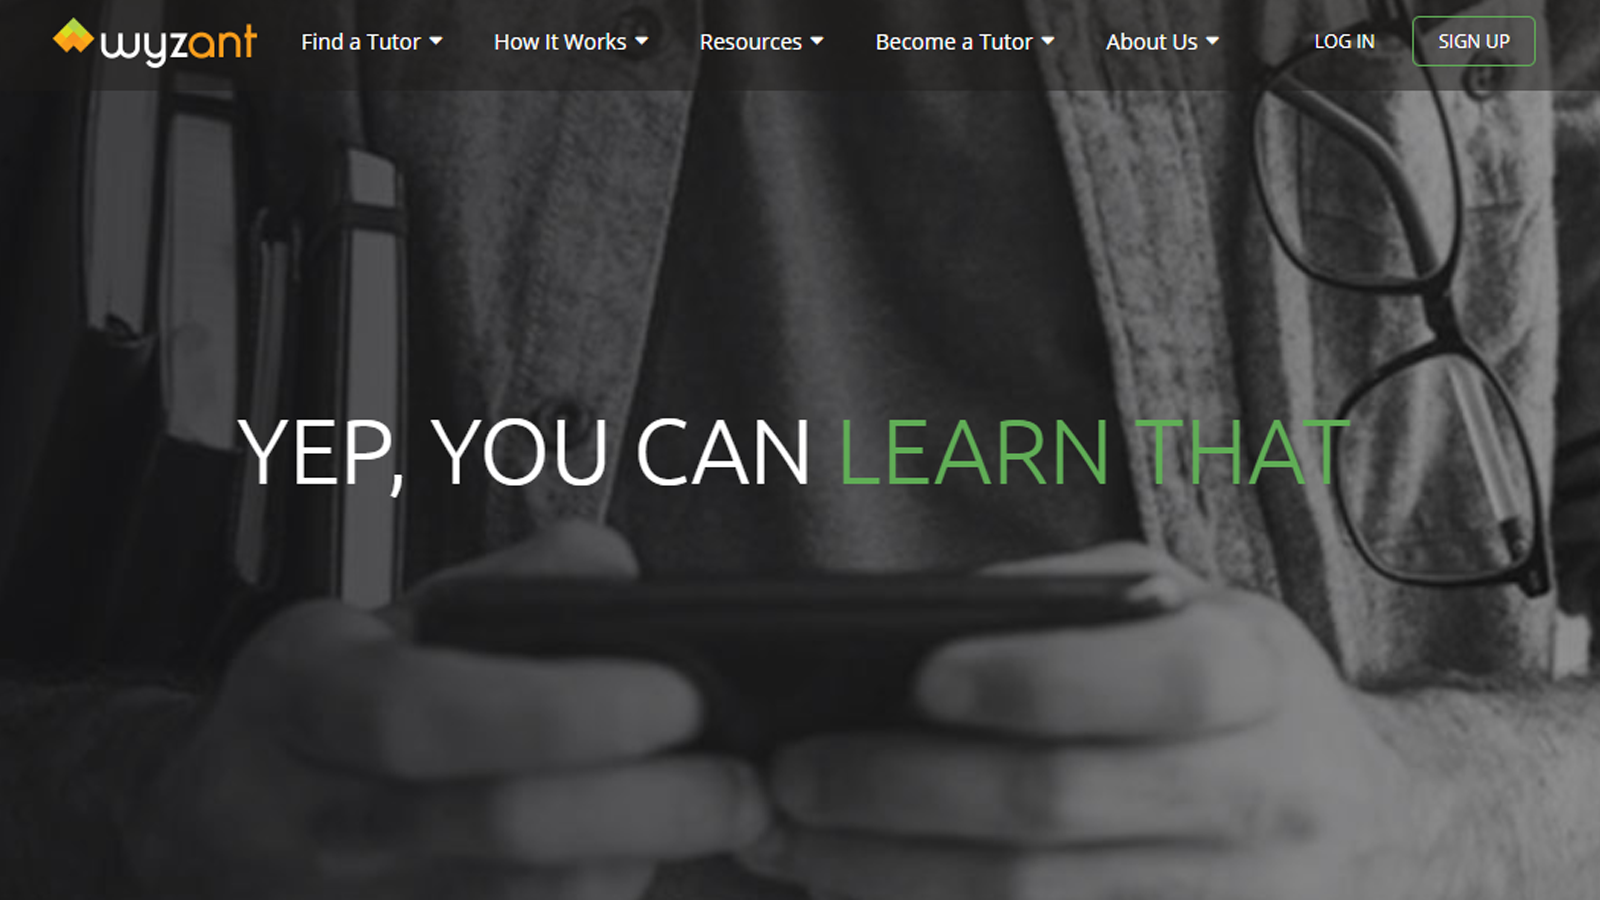 Wyzant home page with motivational quote and tutoring options